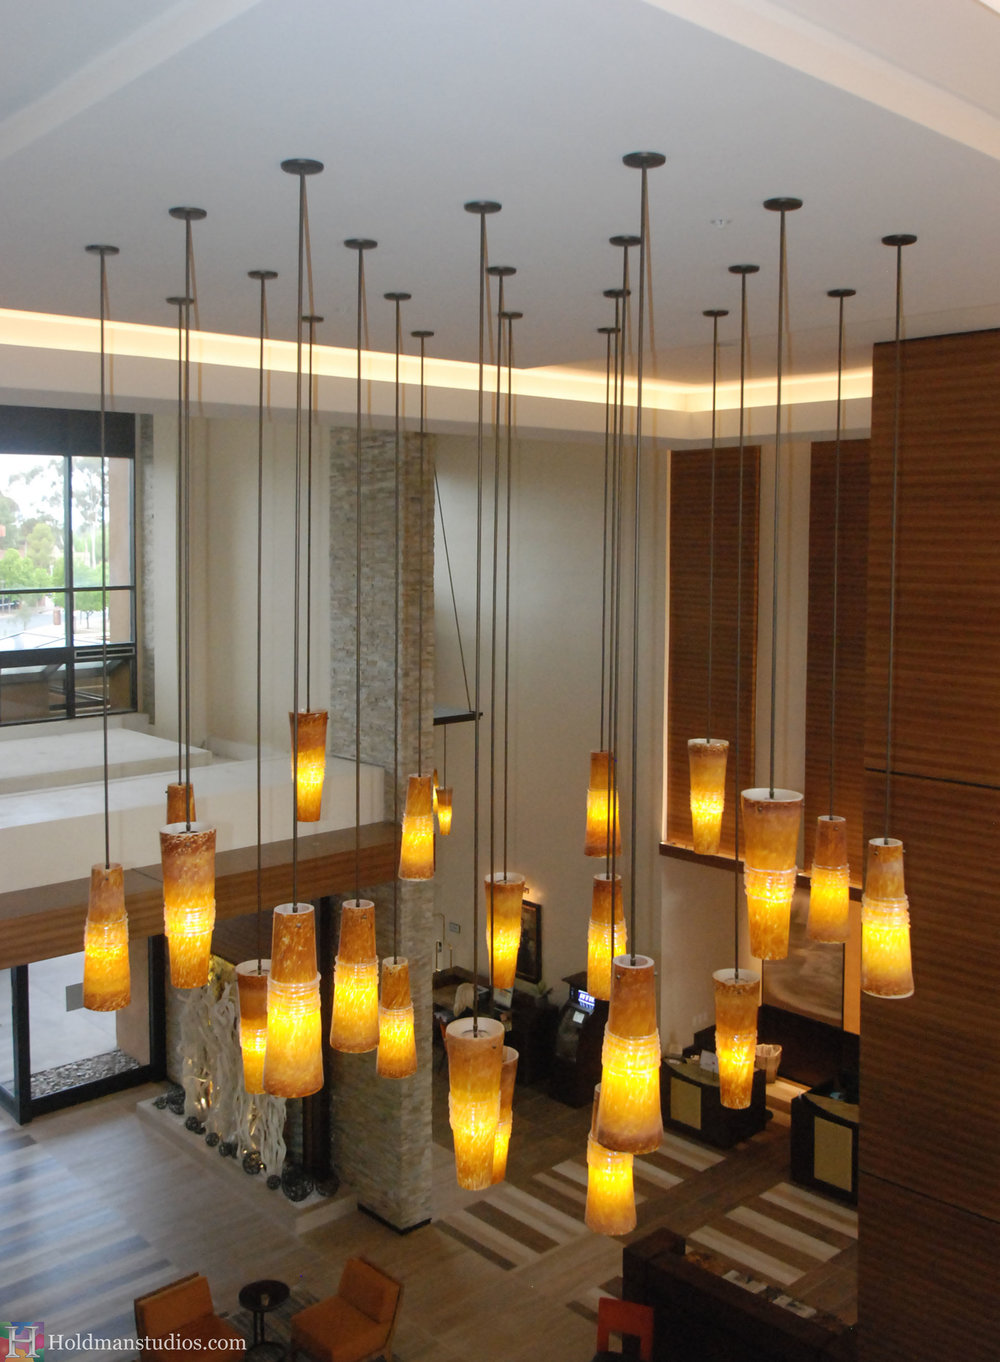 Holdman-studios-hand-blown-glass-lighting-marriot-hotel.jpg